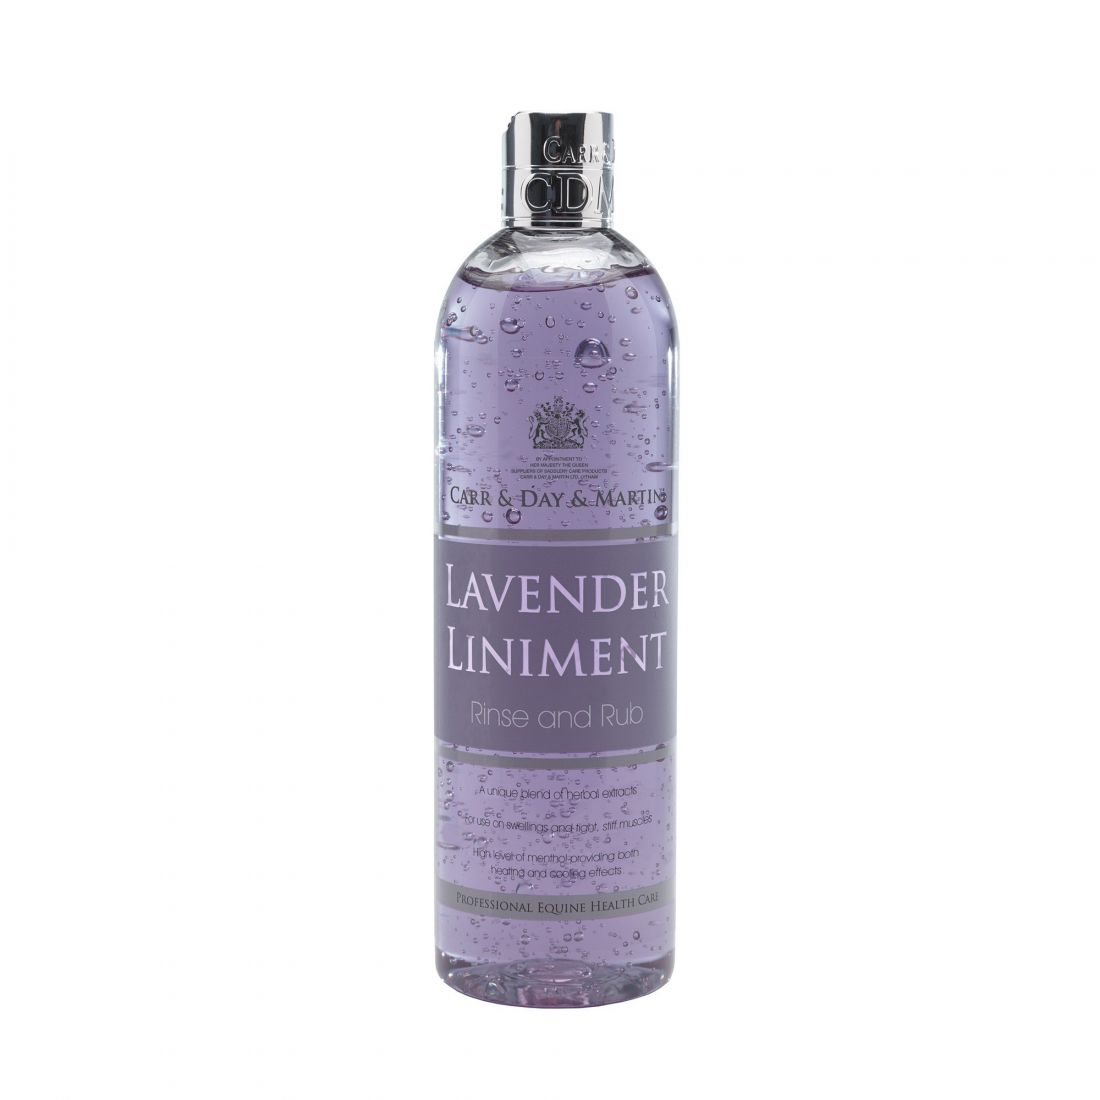 Lavender Liniment Rinse and Rub (Линимент двойного действия с шипами лаванды)